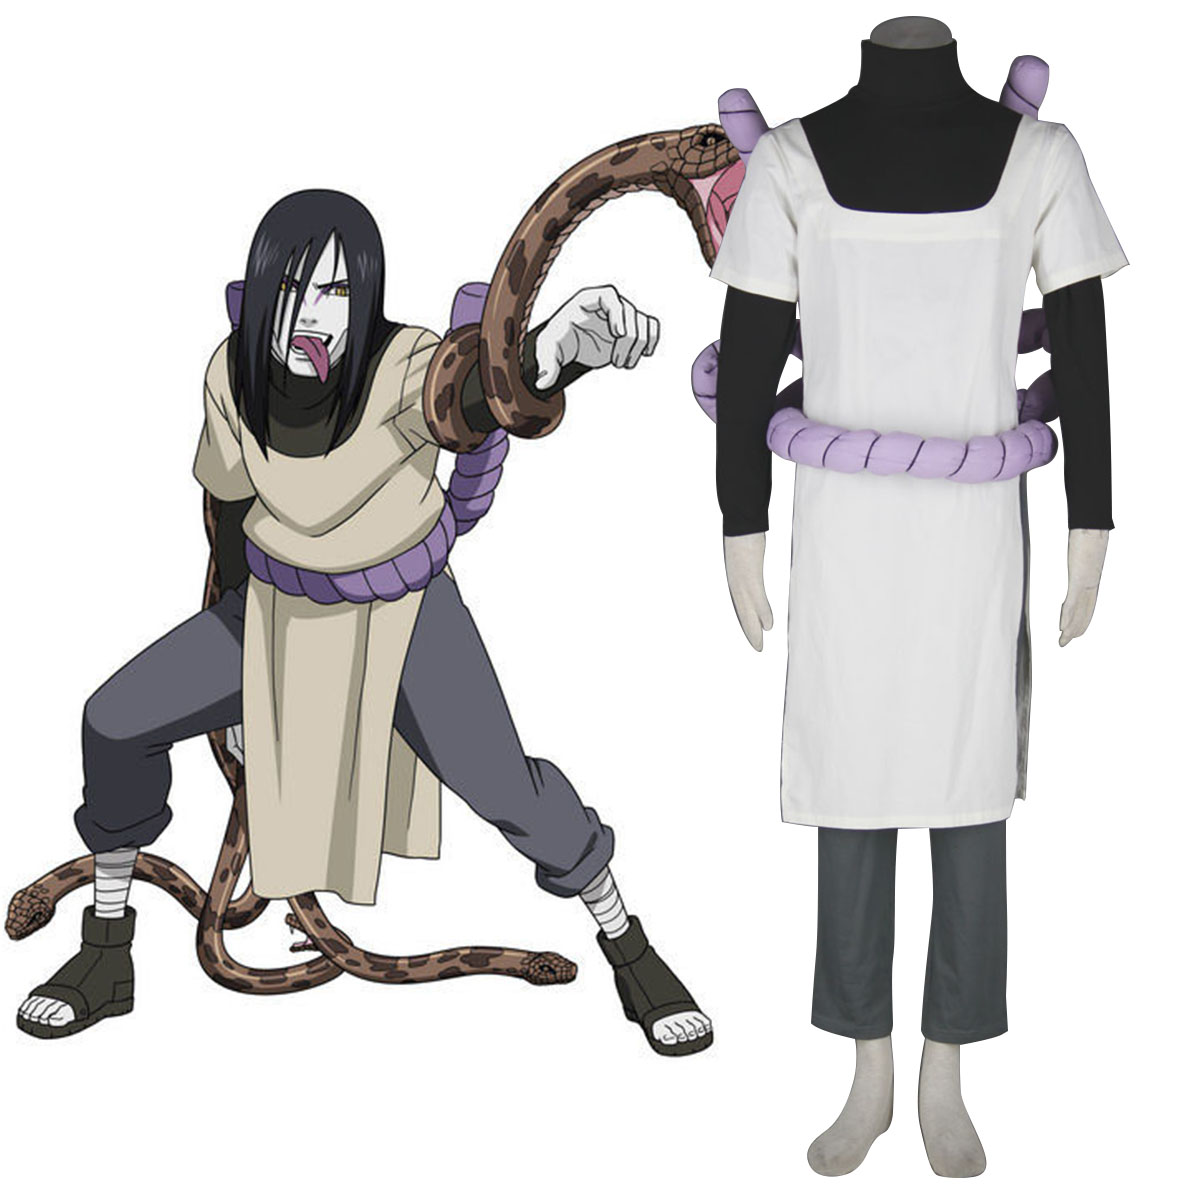 Naruto Orochimaru 1 Anime Cosplay Costumes Outfit